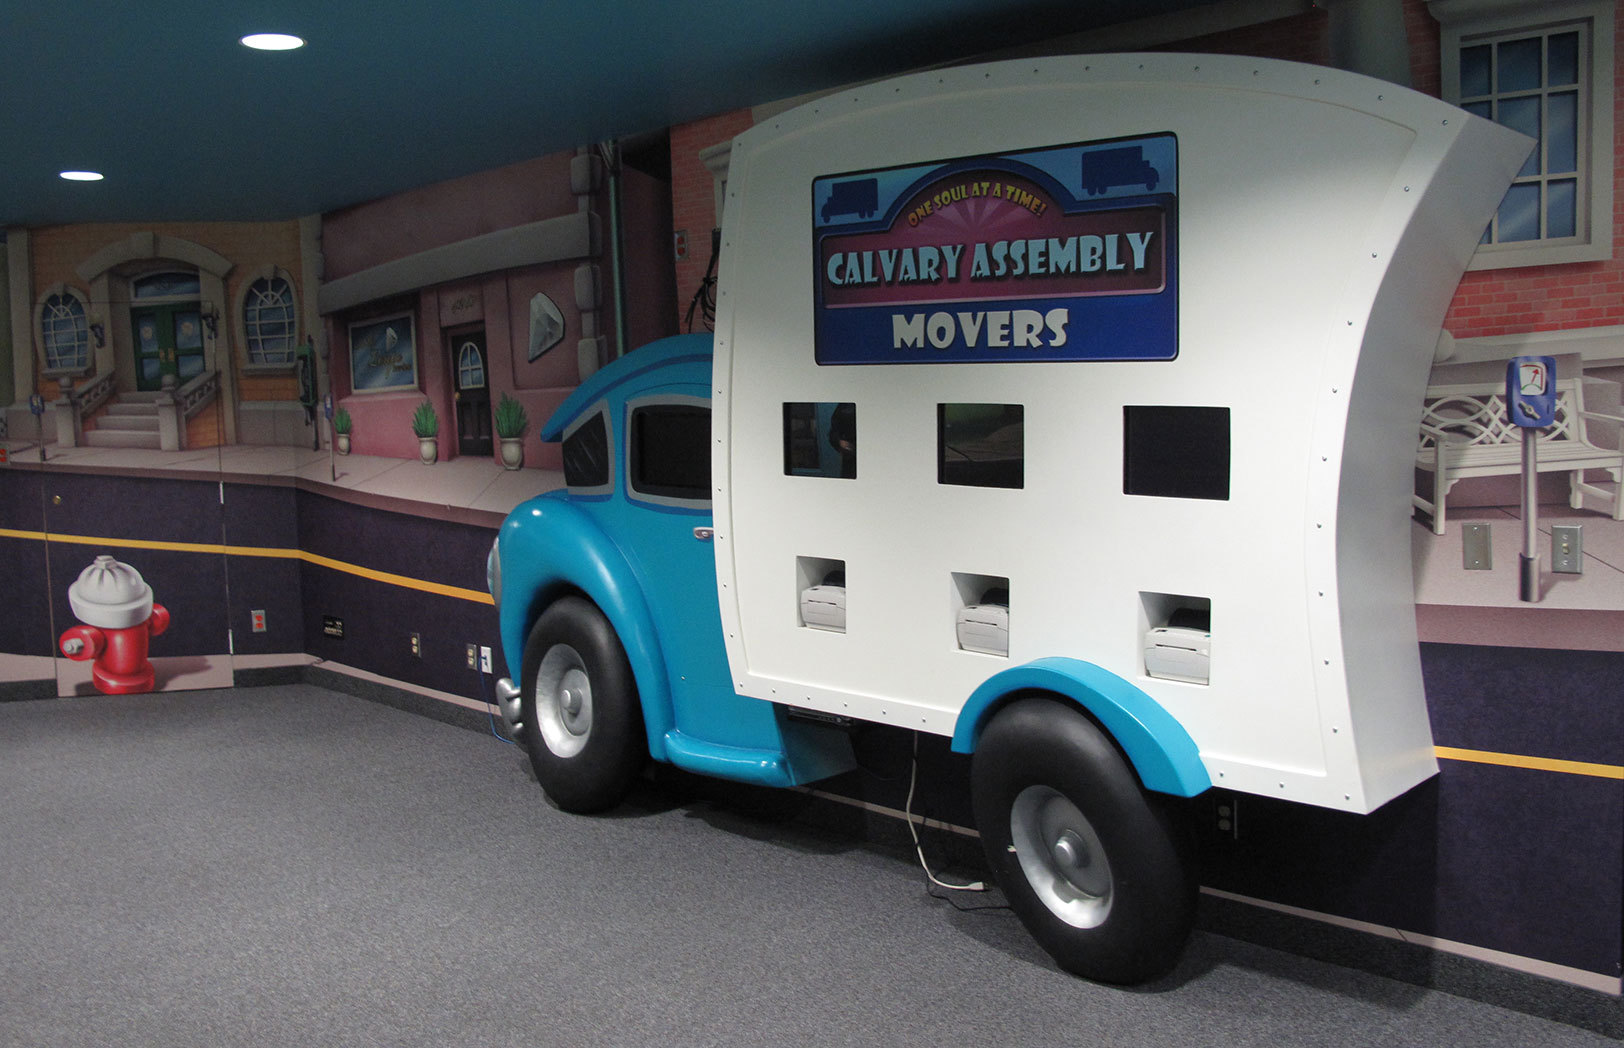 Delivery Truck Check In Kiosk and Gaming Station in Big City Toon Town Themed Space